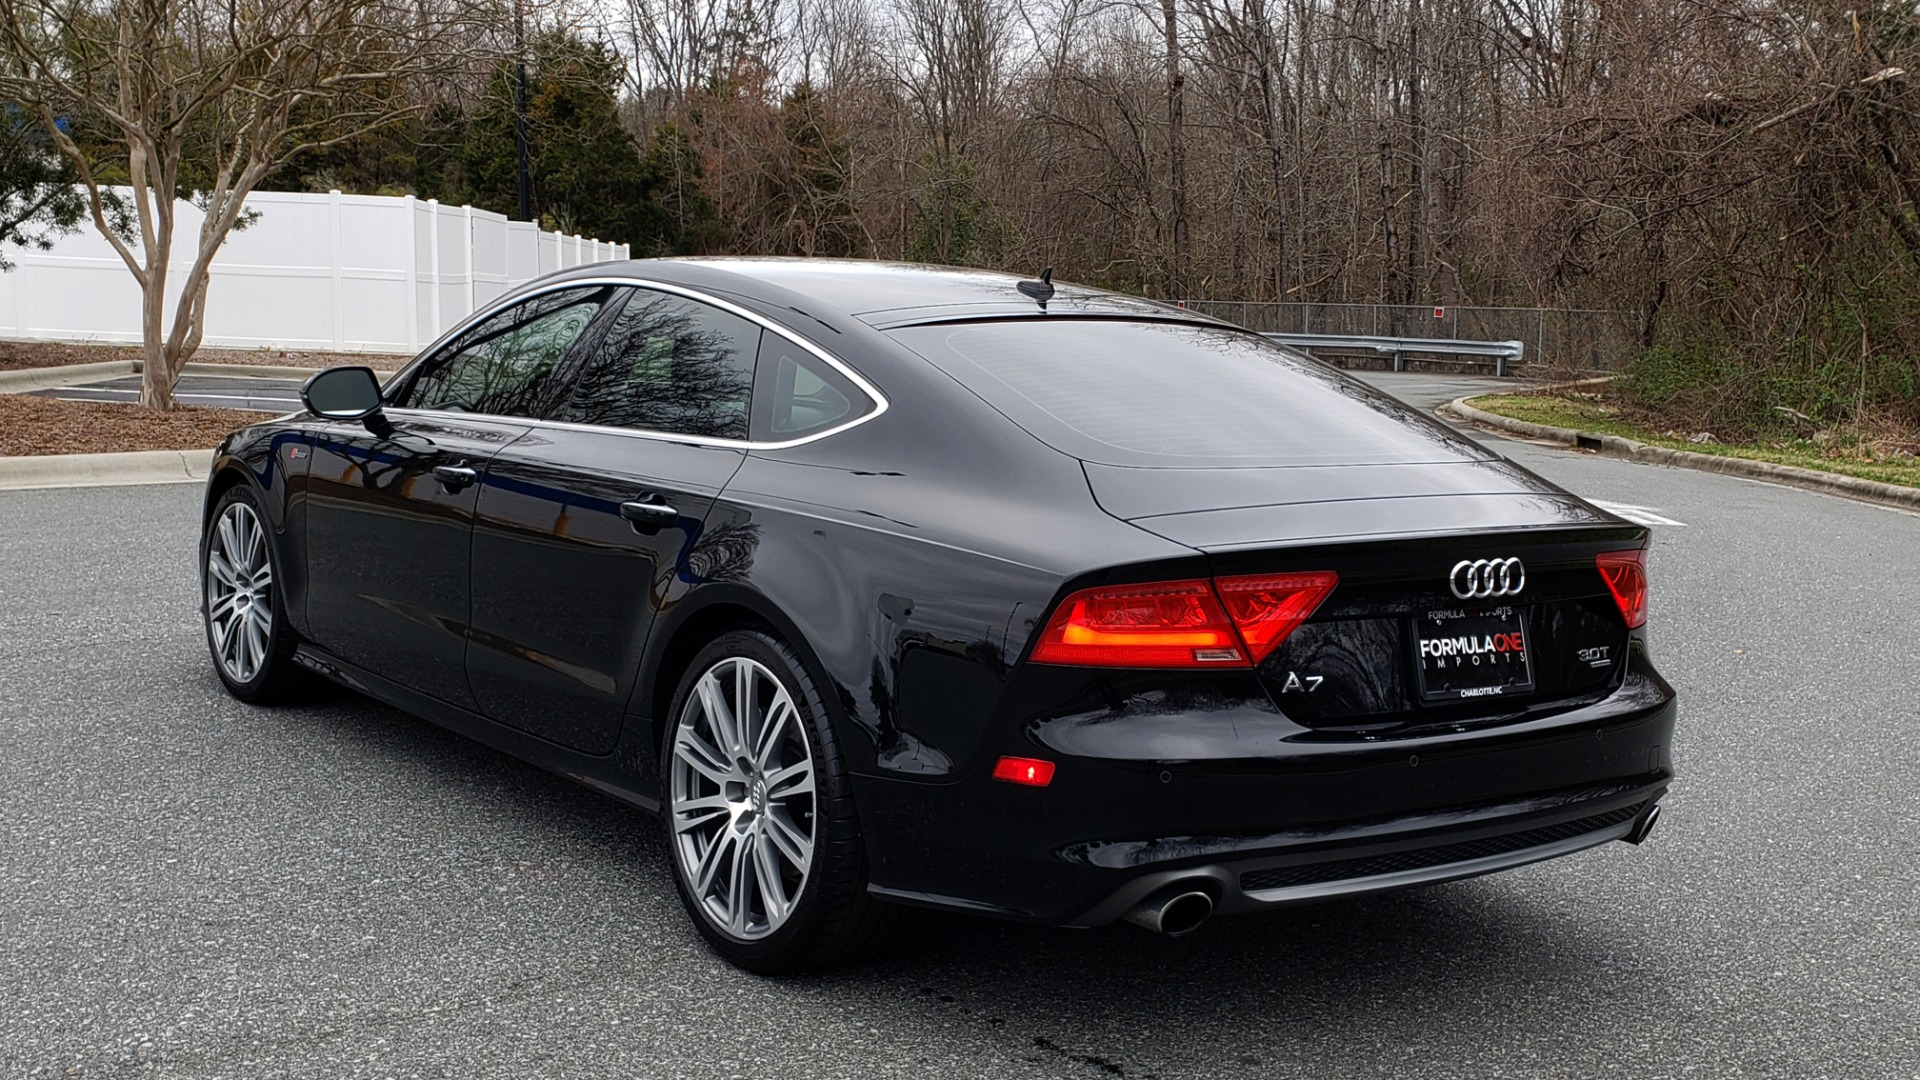 Used 2014 Audi A7 3.0 PRESTIGE / NAV / SUNROOF / BOSE / REARVIEW for sale Sold at Formula Imports in Charlotte NC 28227 4